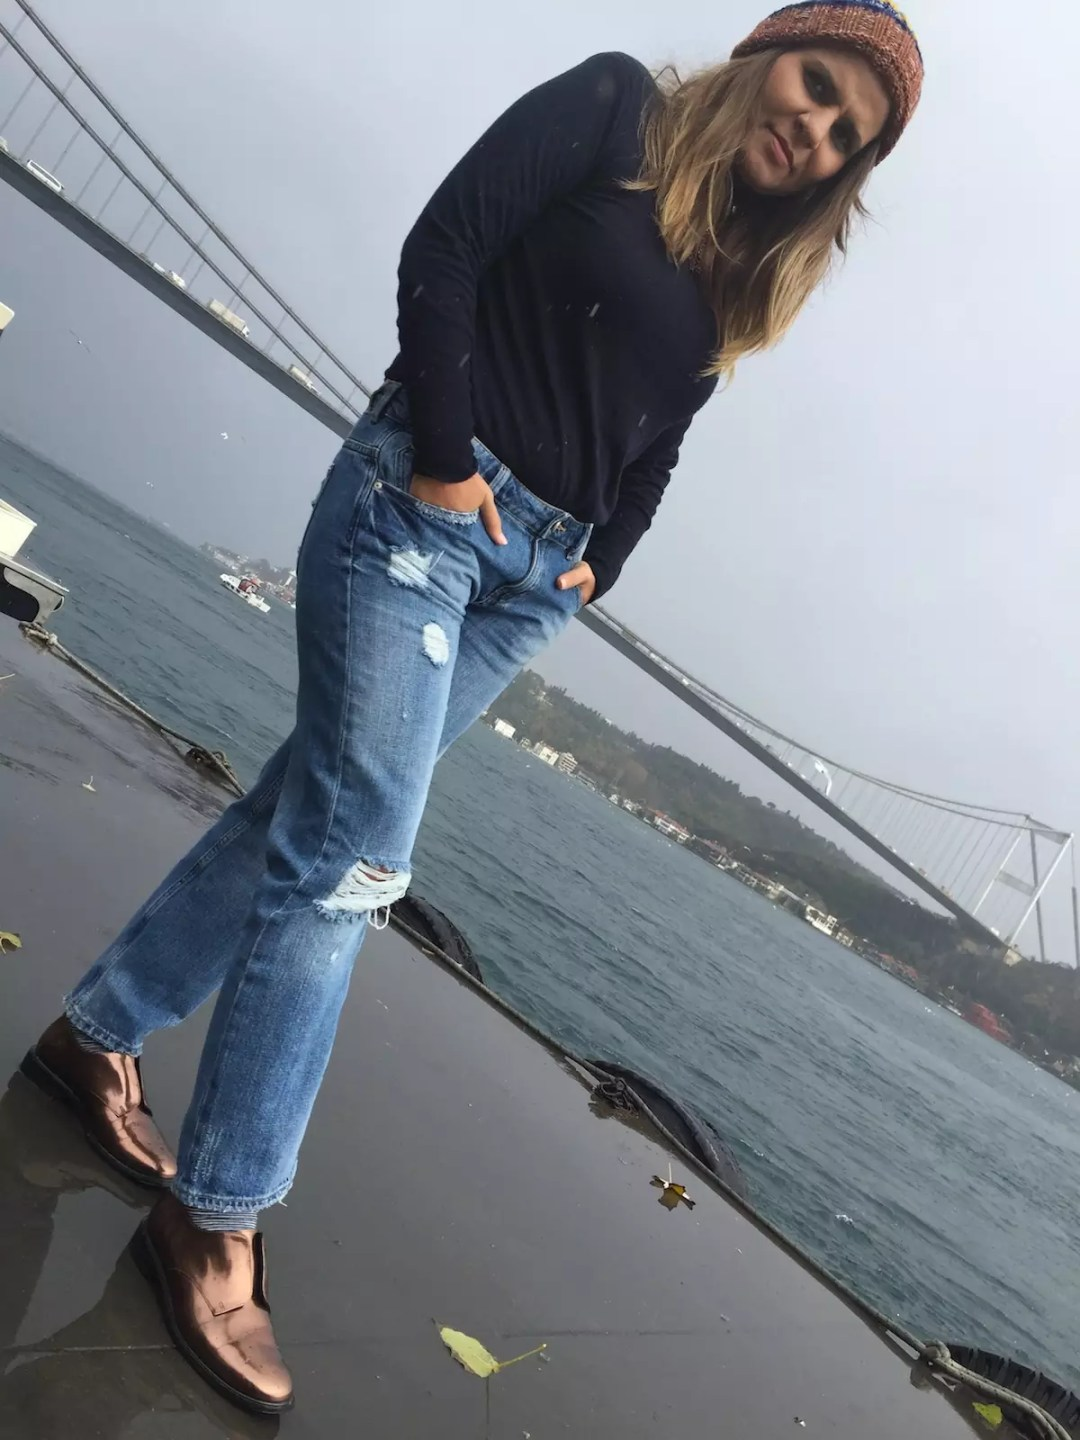 fashion-technology-blogger-alley-girl-in-istanbul-istanbul-street-style-bosphorus-2